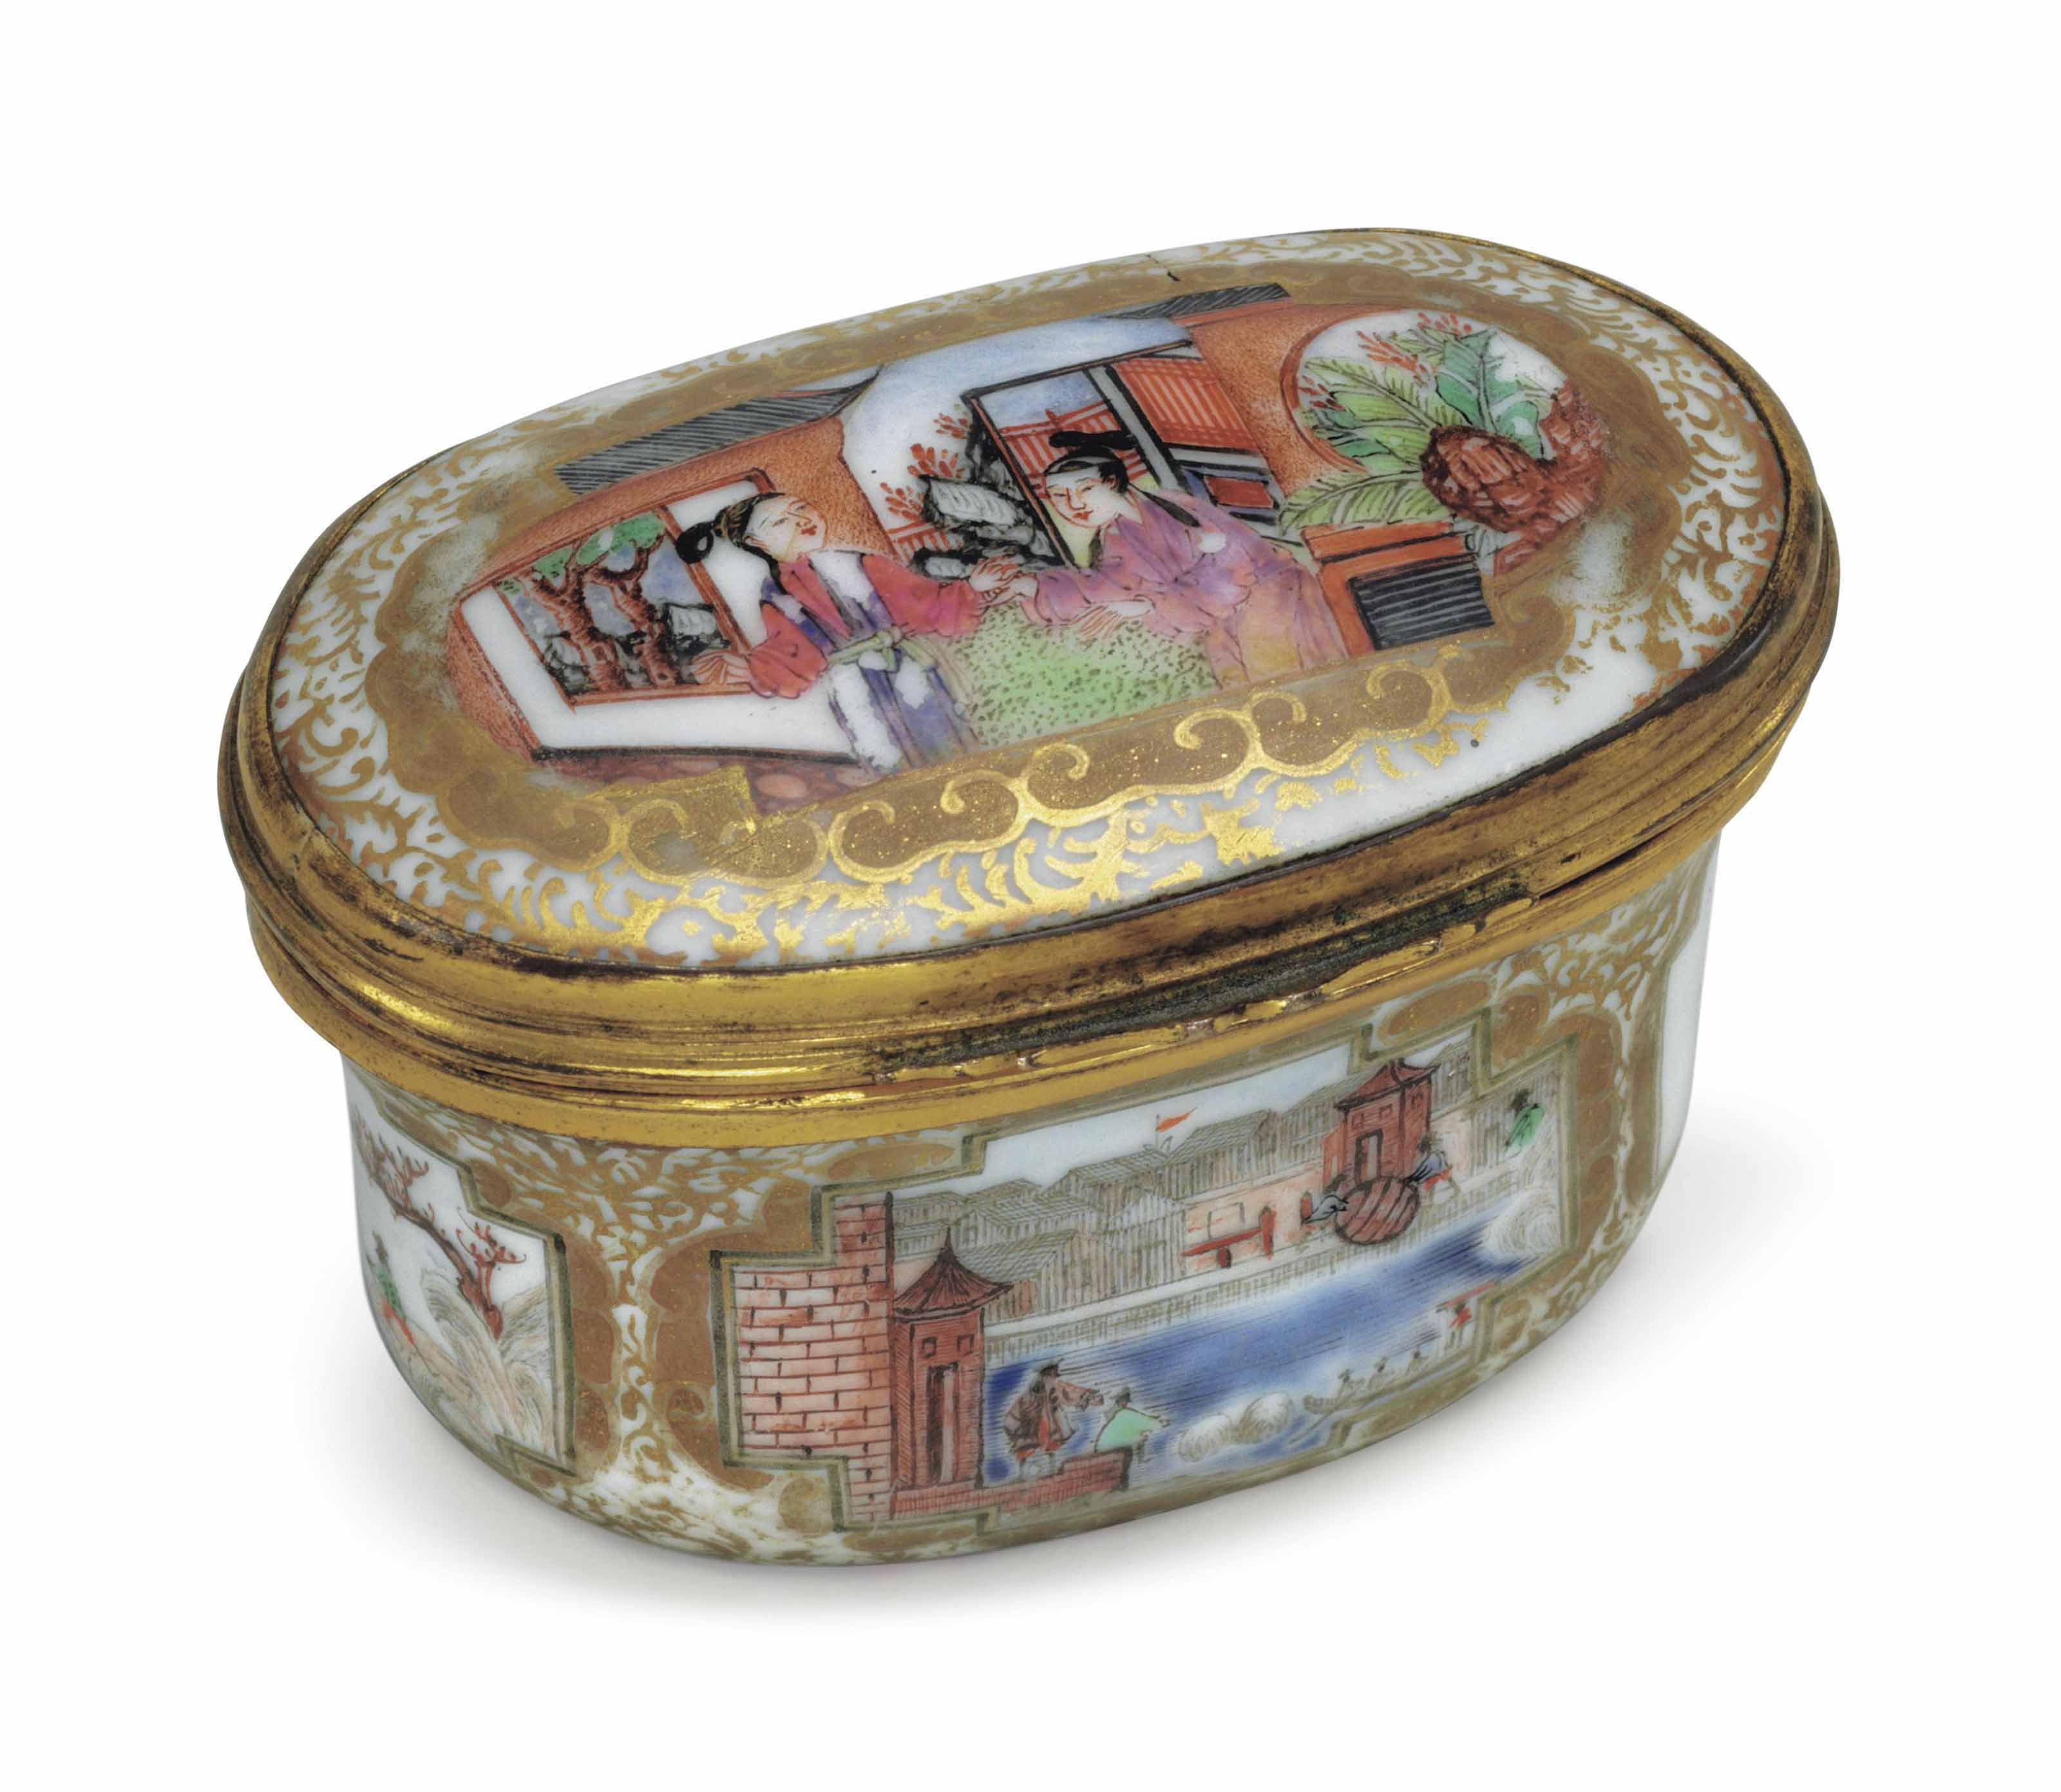 A FAMILLE ROSE AND GILT PORCELAIN OVAL SNUFF BOX